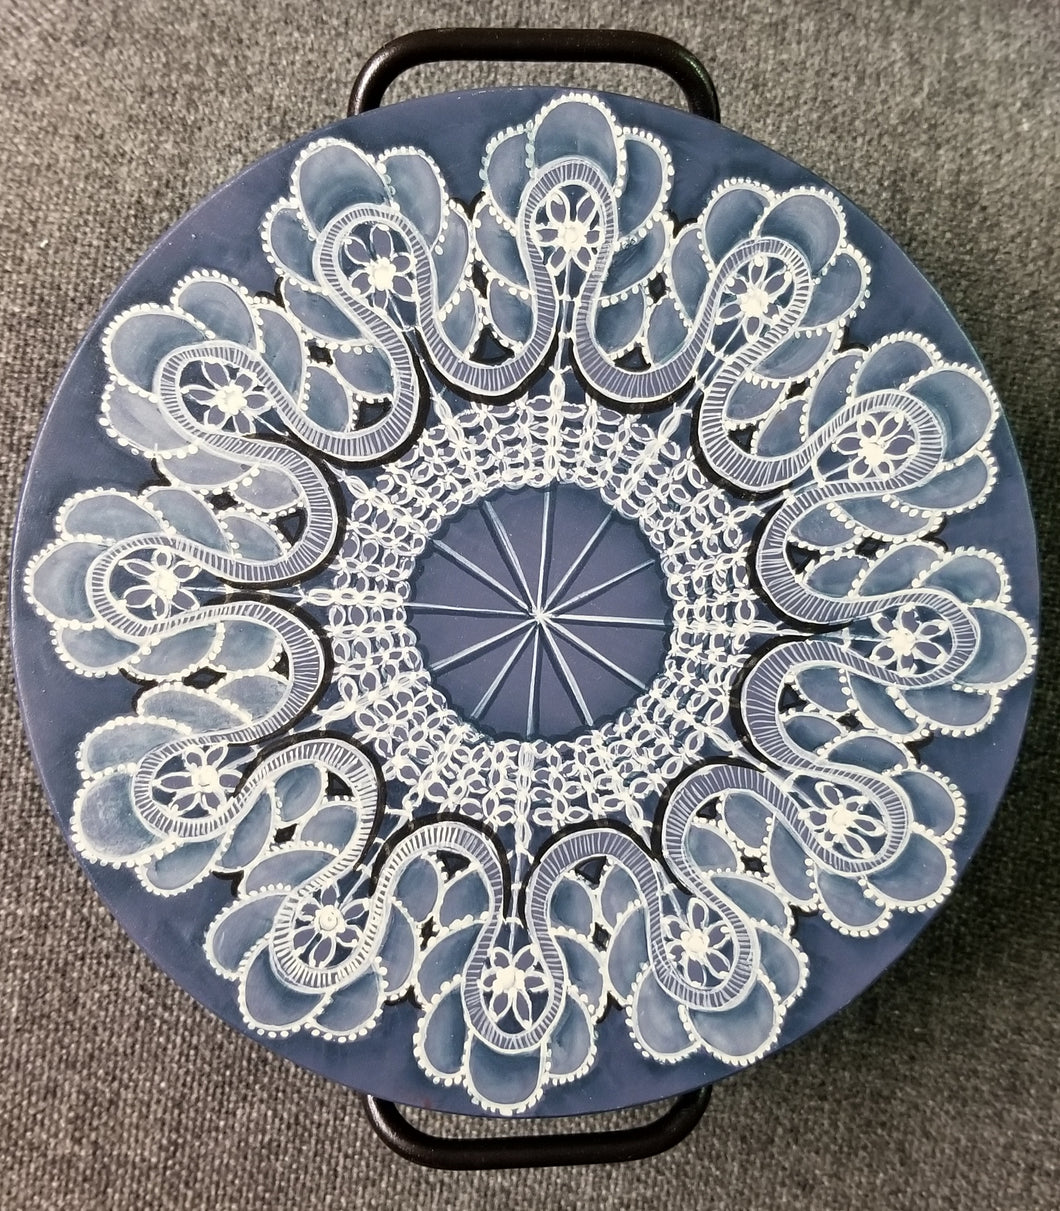 Metal Bowl with Wood Lid Painted in Lace Design